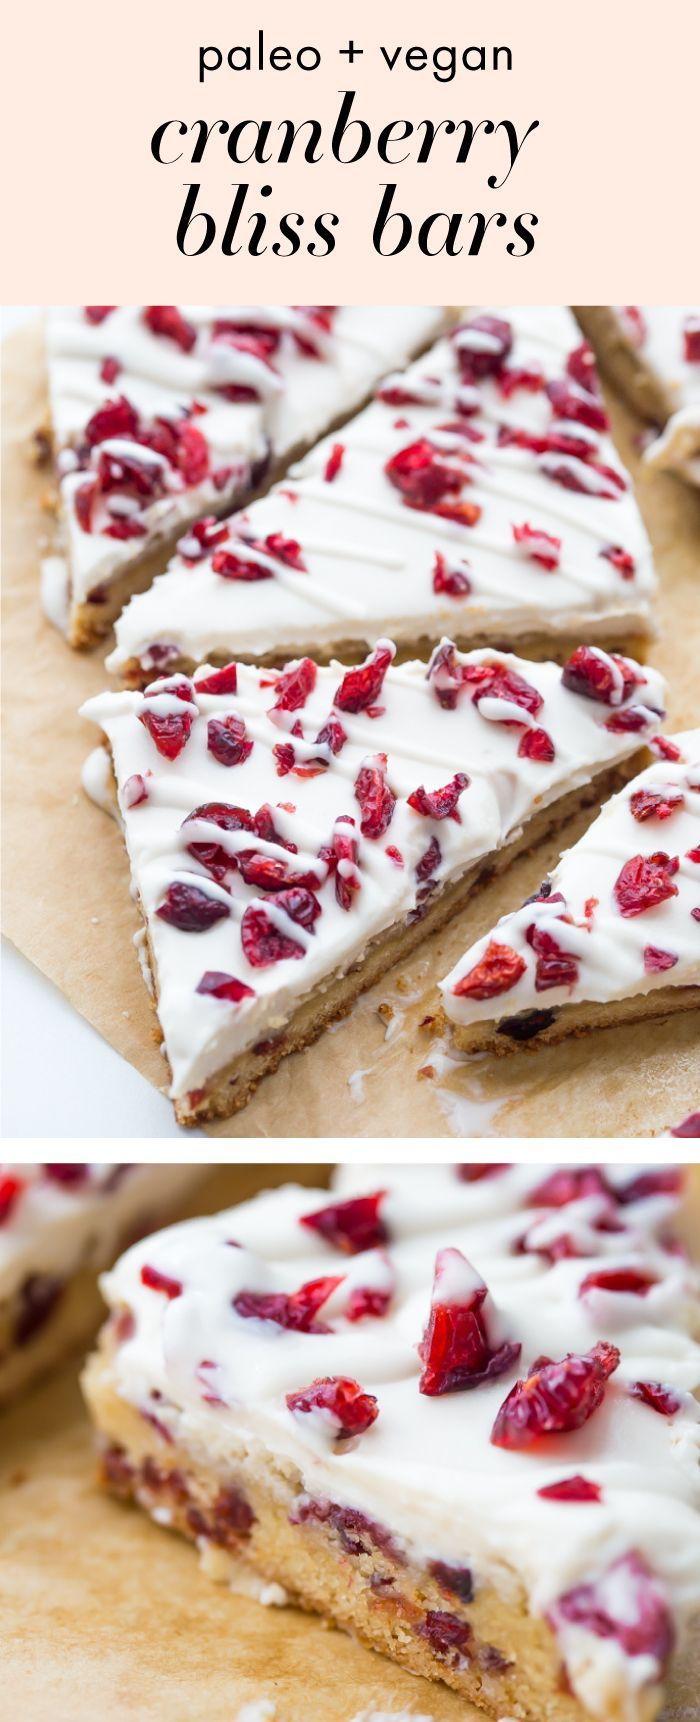 "These paleo cranberry bliss bars are just that: bliss! These vegan cranberry bliss bars are a grain-, gluten-, and dairy-free paleo Starbucks copycat recipe that's perfect for the holidays. Blondies, layered with ""cream cheese"" frosting, topped with dried cranberries, these paleo cranberry bliss bars are so delicious.#Teadaw#Teatime"